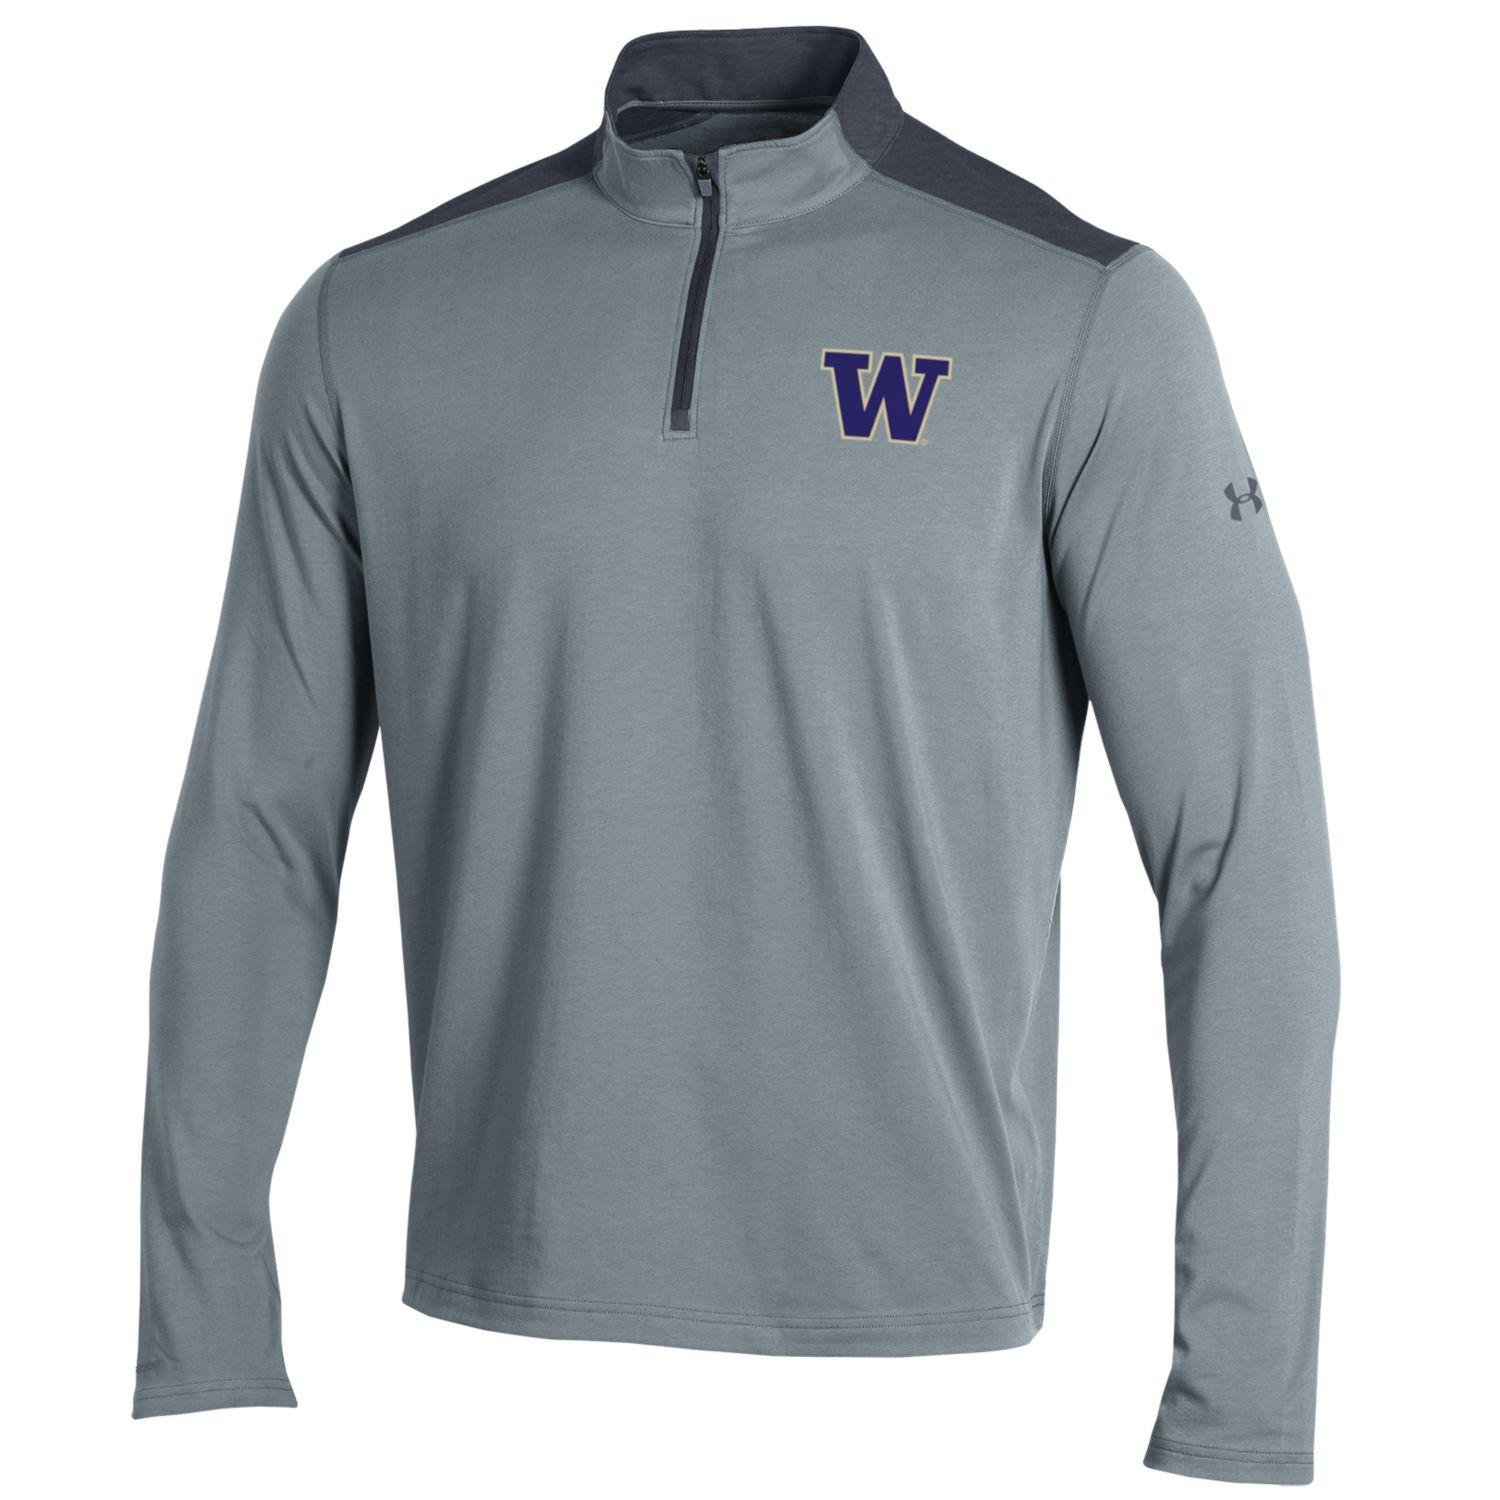 NCAAメンズunder armour Chargedコットン軽量1 / 4 Zip B0757HR999 Medium|True Gray|Washington Huskies True Gray Medium